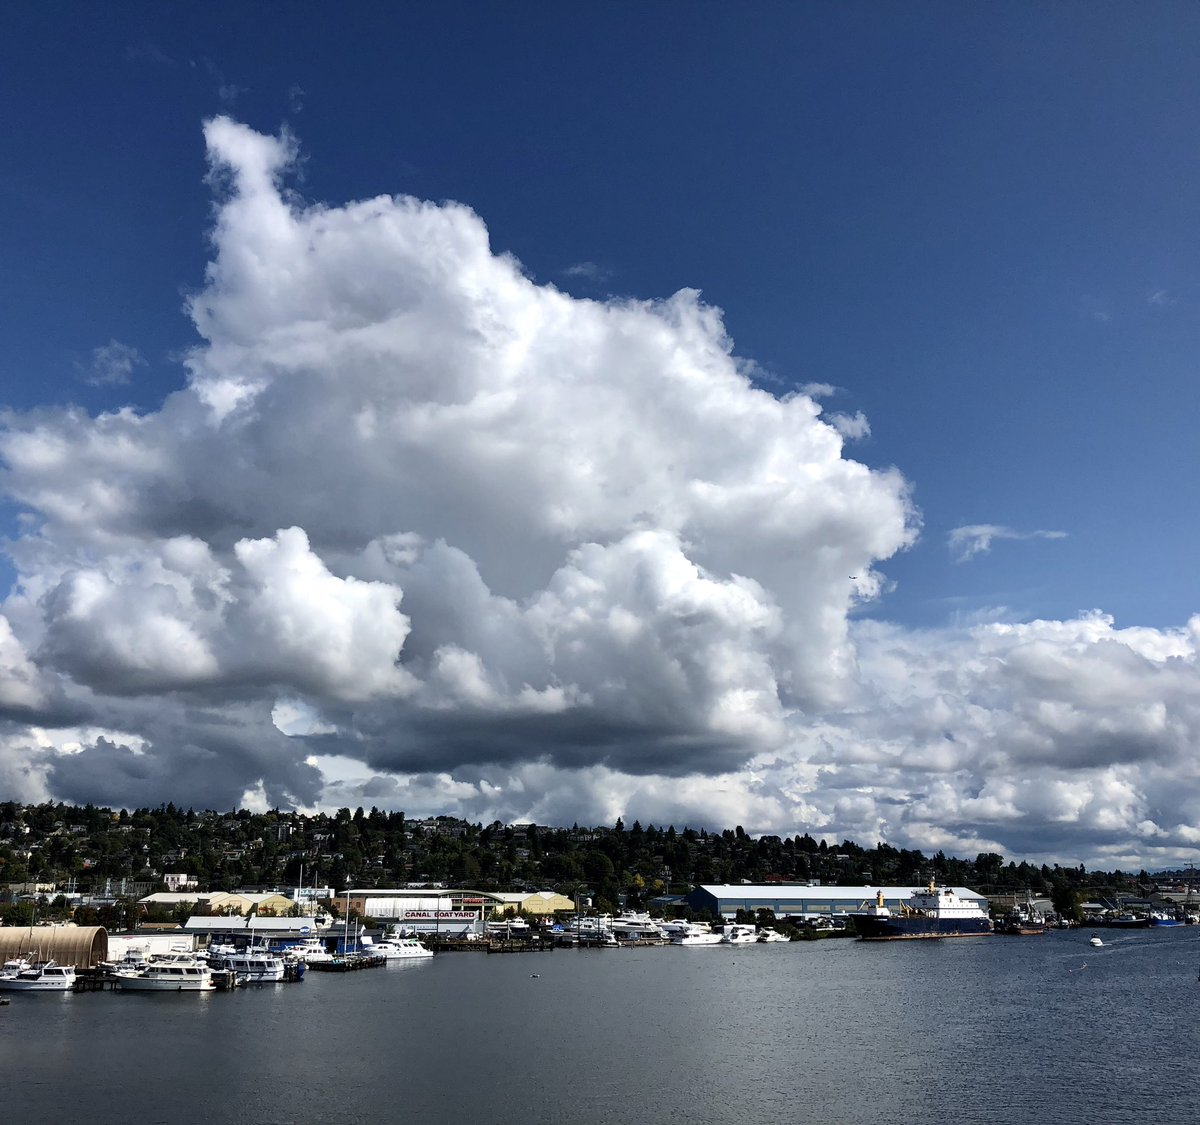 The sky was awesome today. #seattle #endofsummer #Q13FOX<br>http://pic.twitter.com/McAOlBfQZK